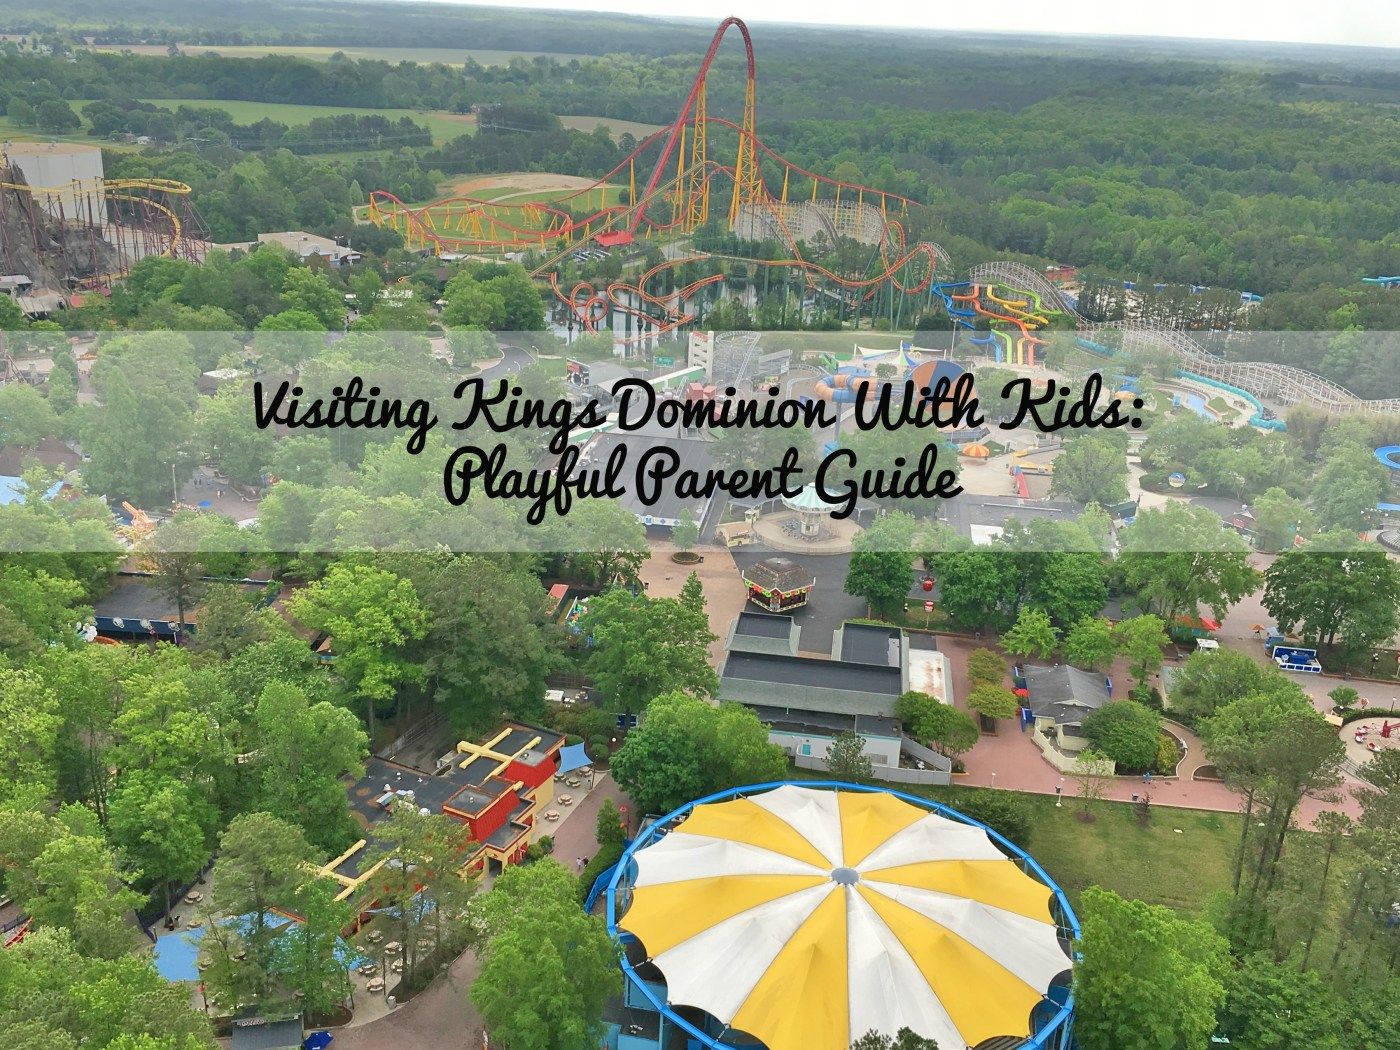 VISITING KINGS DOMINION WITH KIDS: PLAYFUL PARENT GUIDE